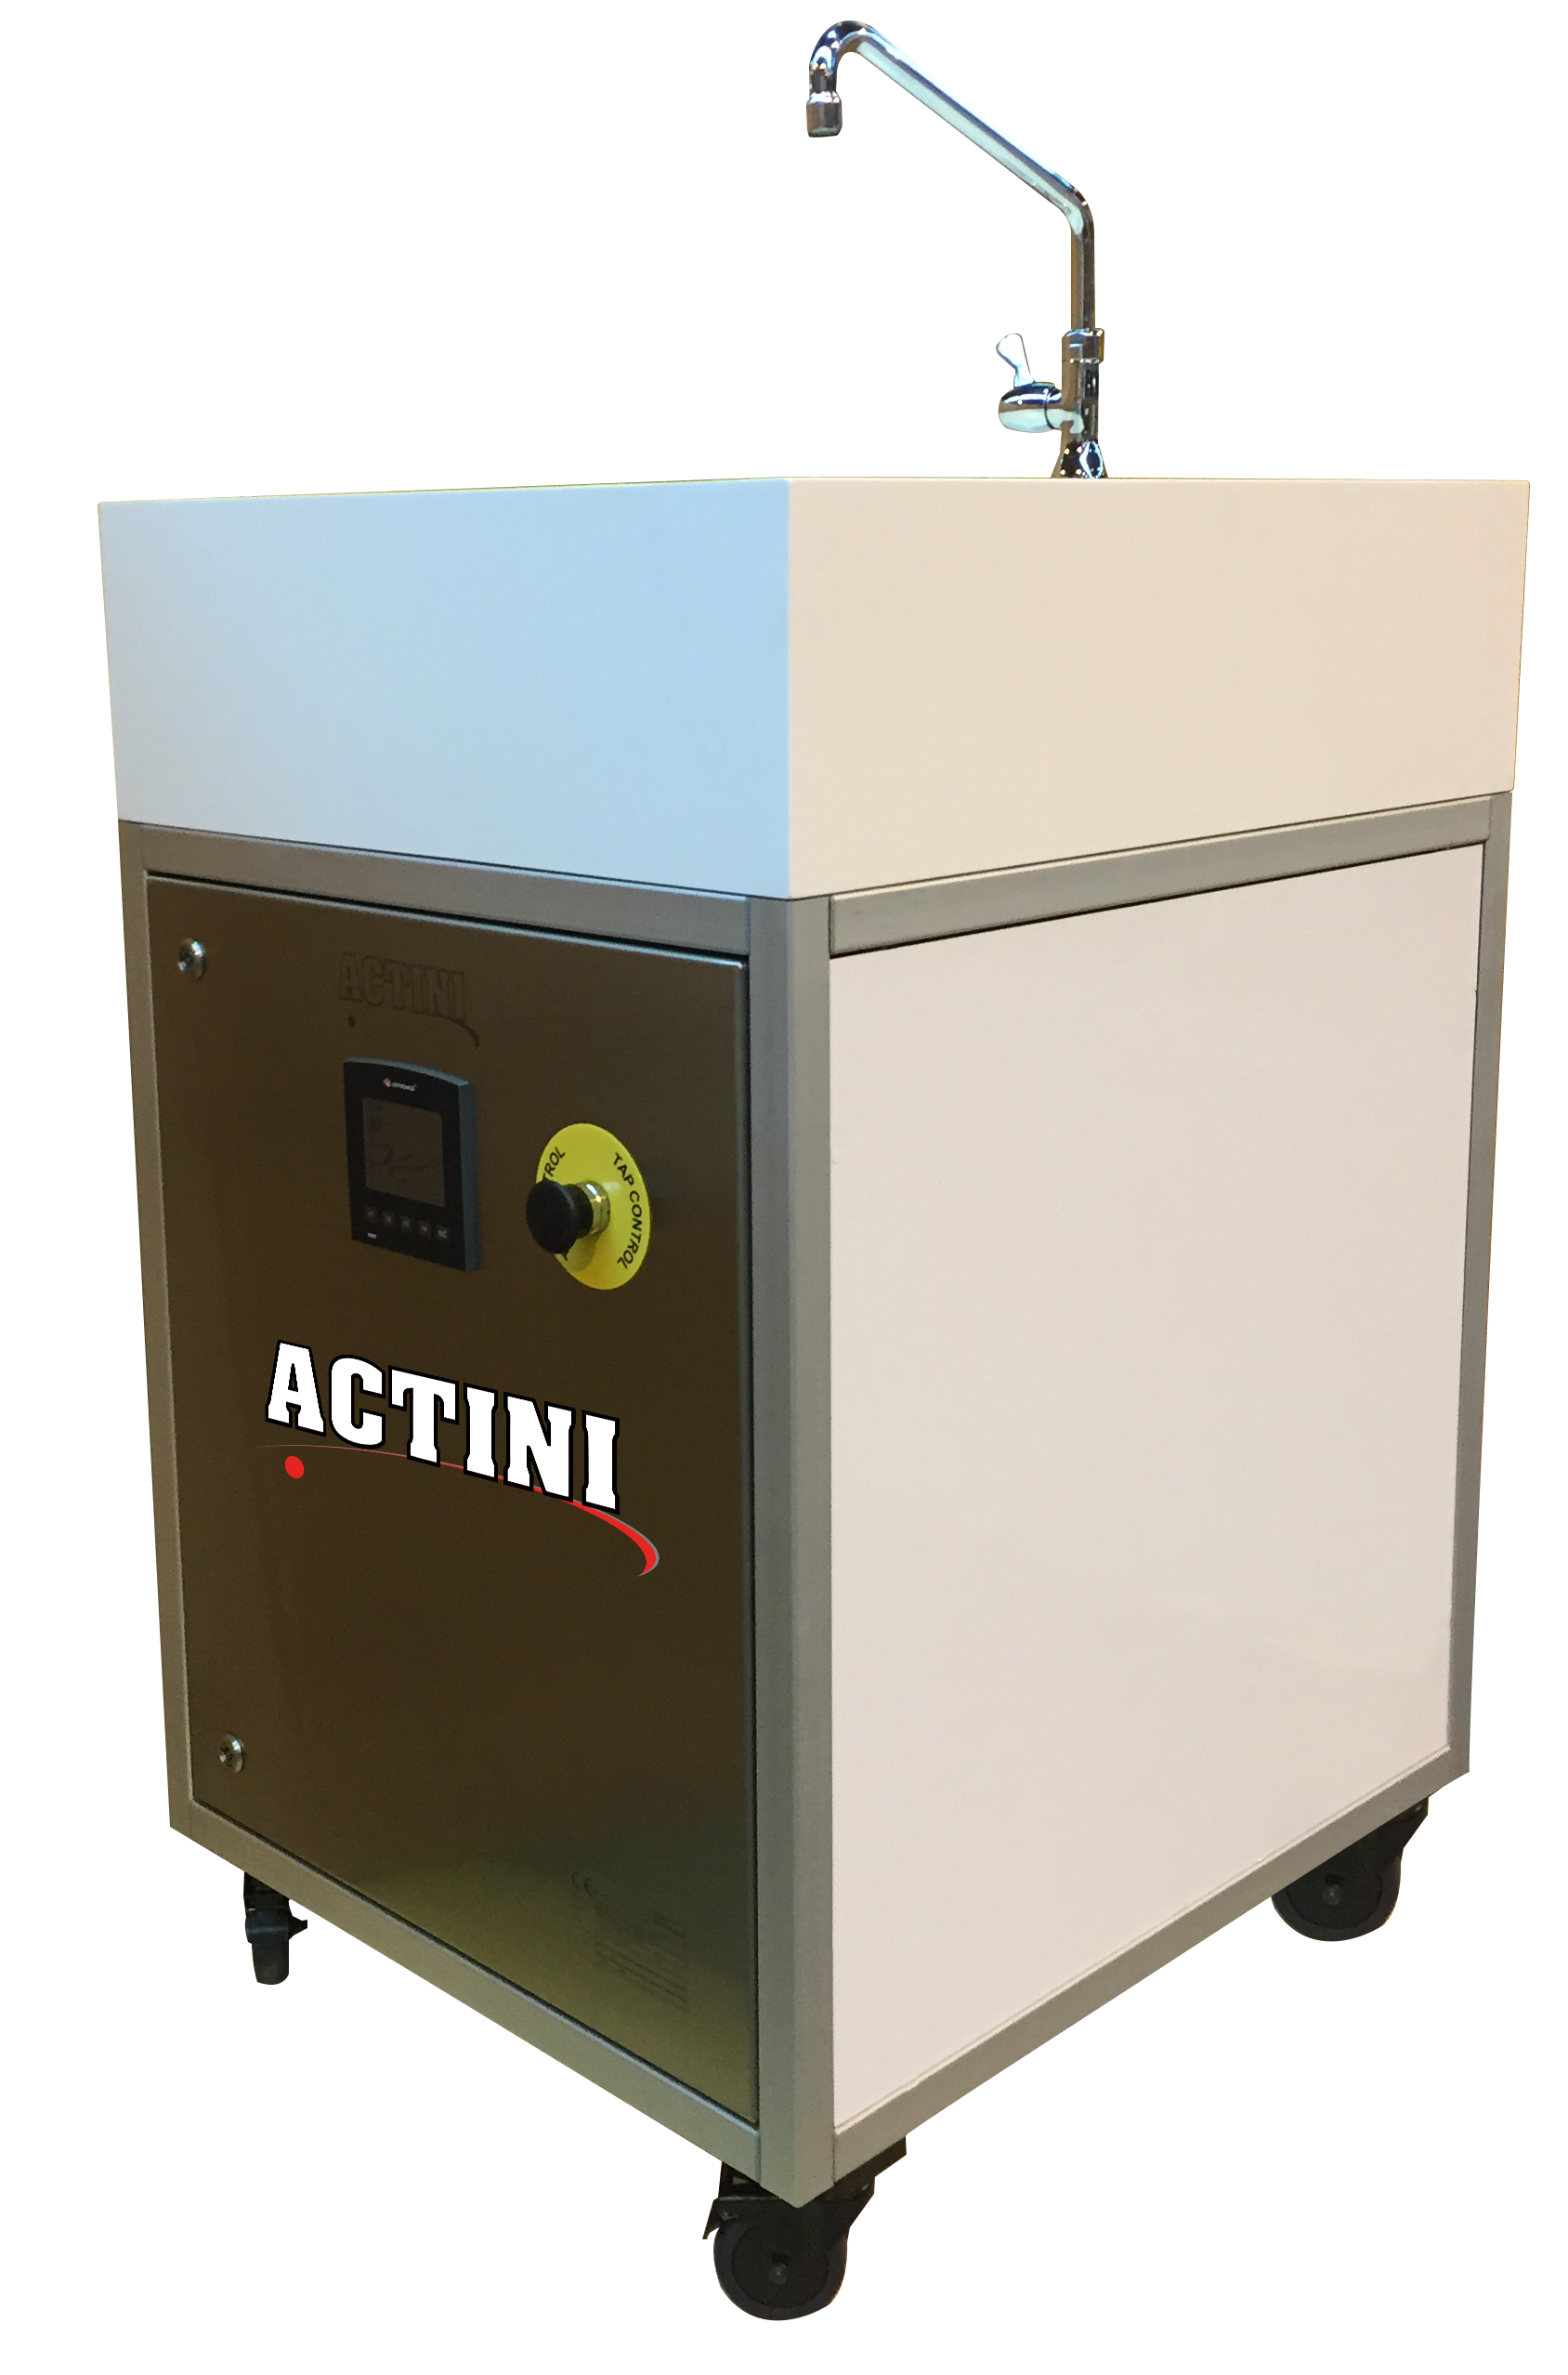 ACTINI Sink decontamination system